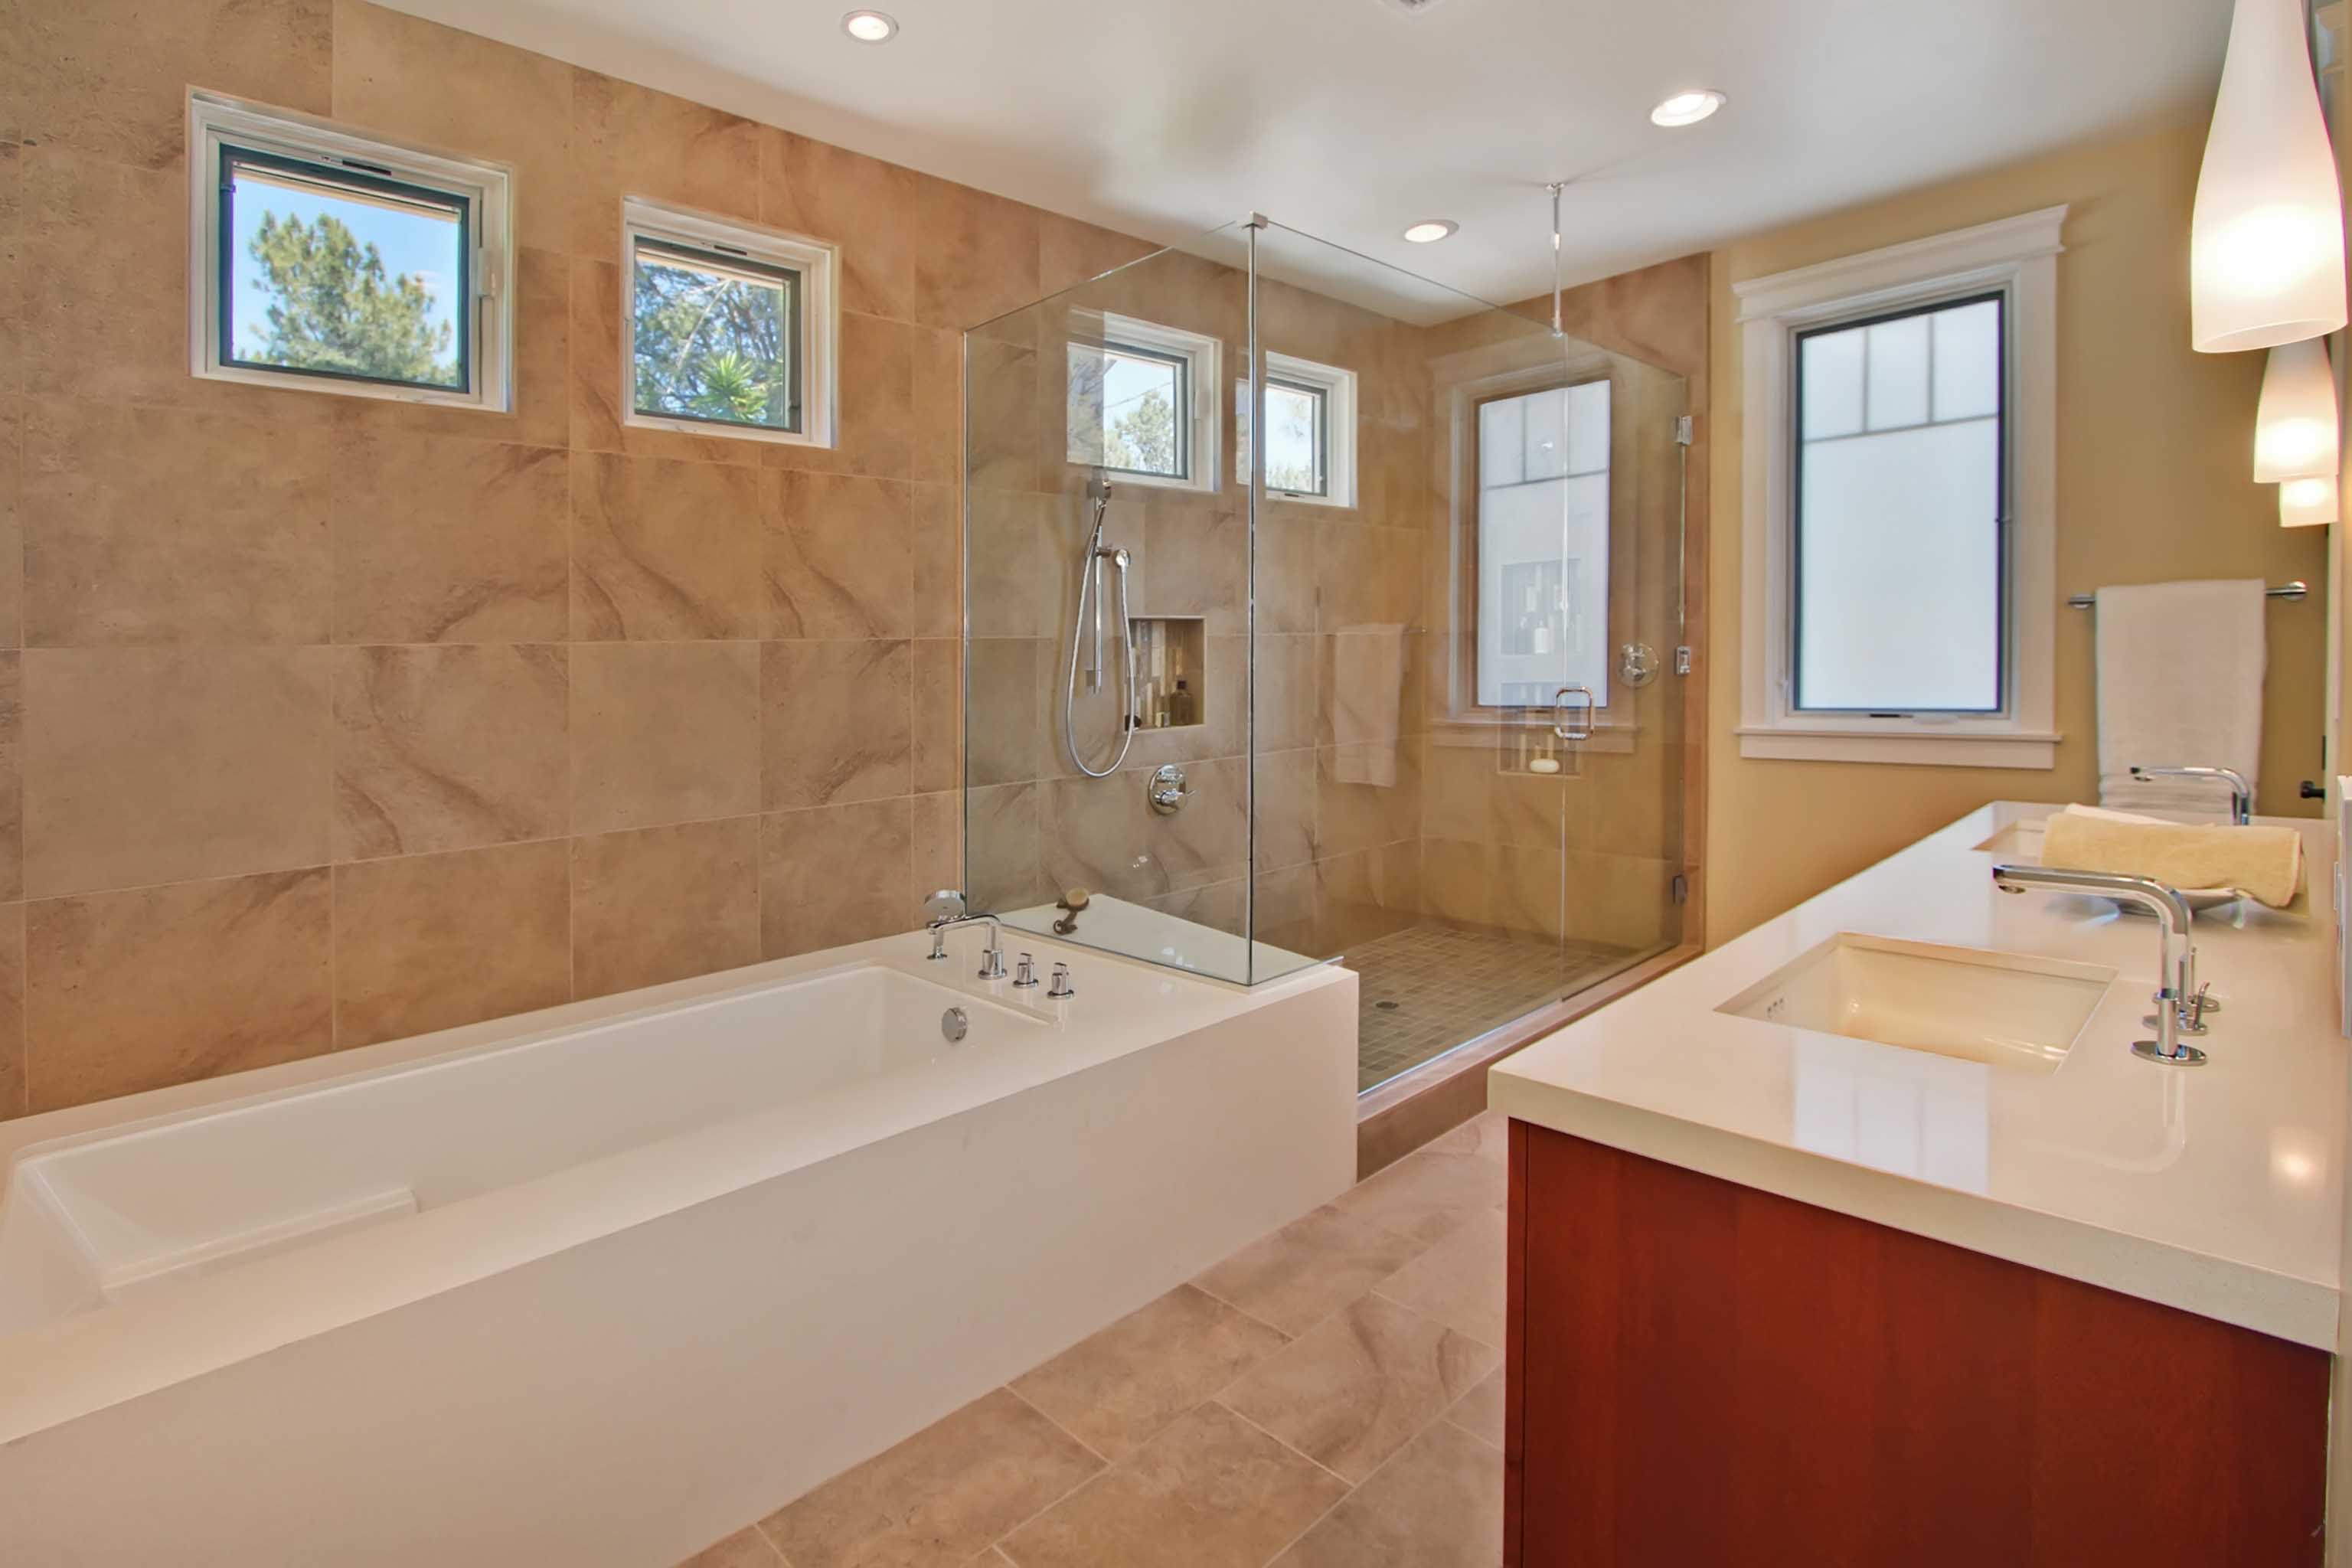 Brown Marble Traditional Bathroom With Glass Walk In Shower (Image 5 of 29)